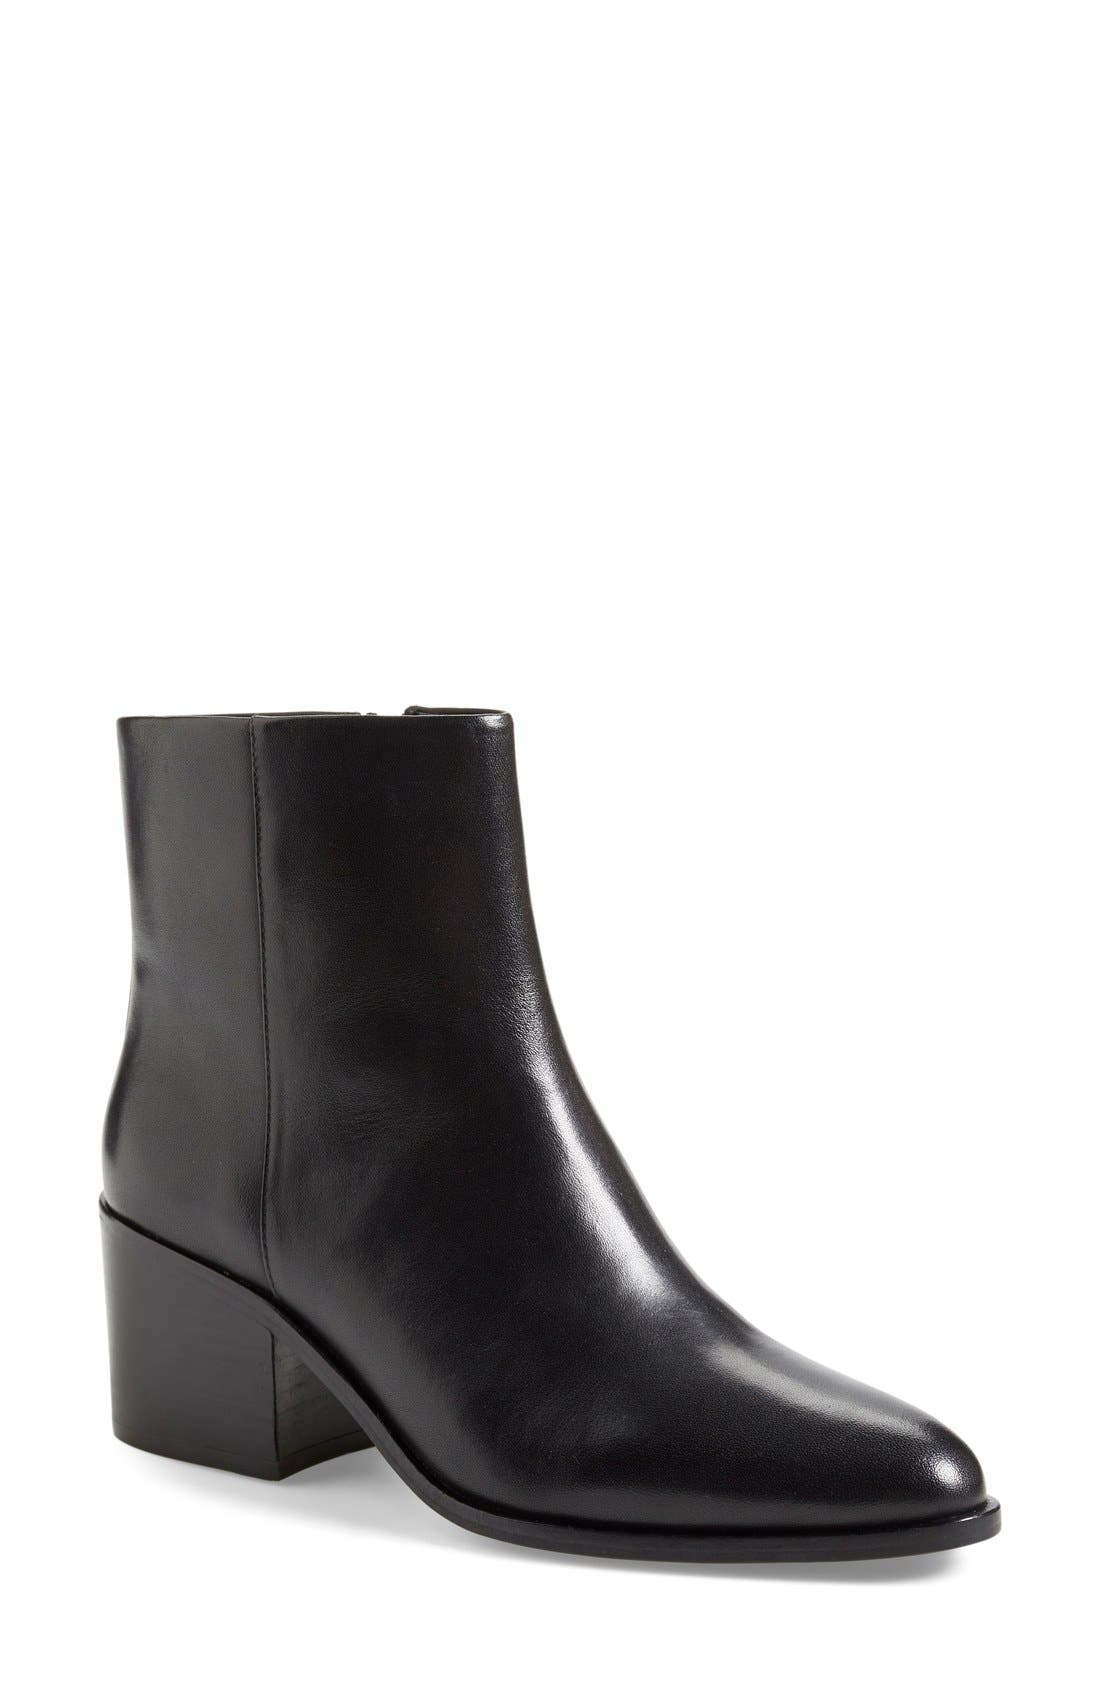 Alternate Image 1 Selected - Opening Ceremony 'Livv' Ankle Boot (Women)